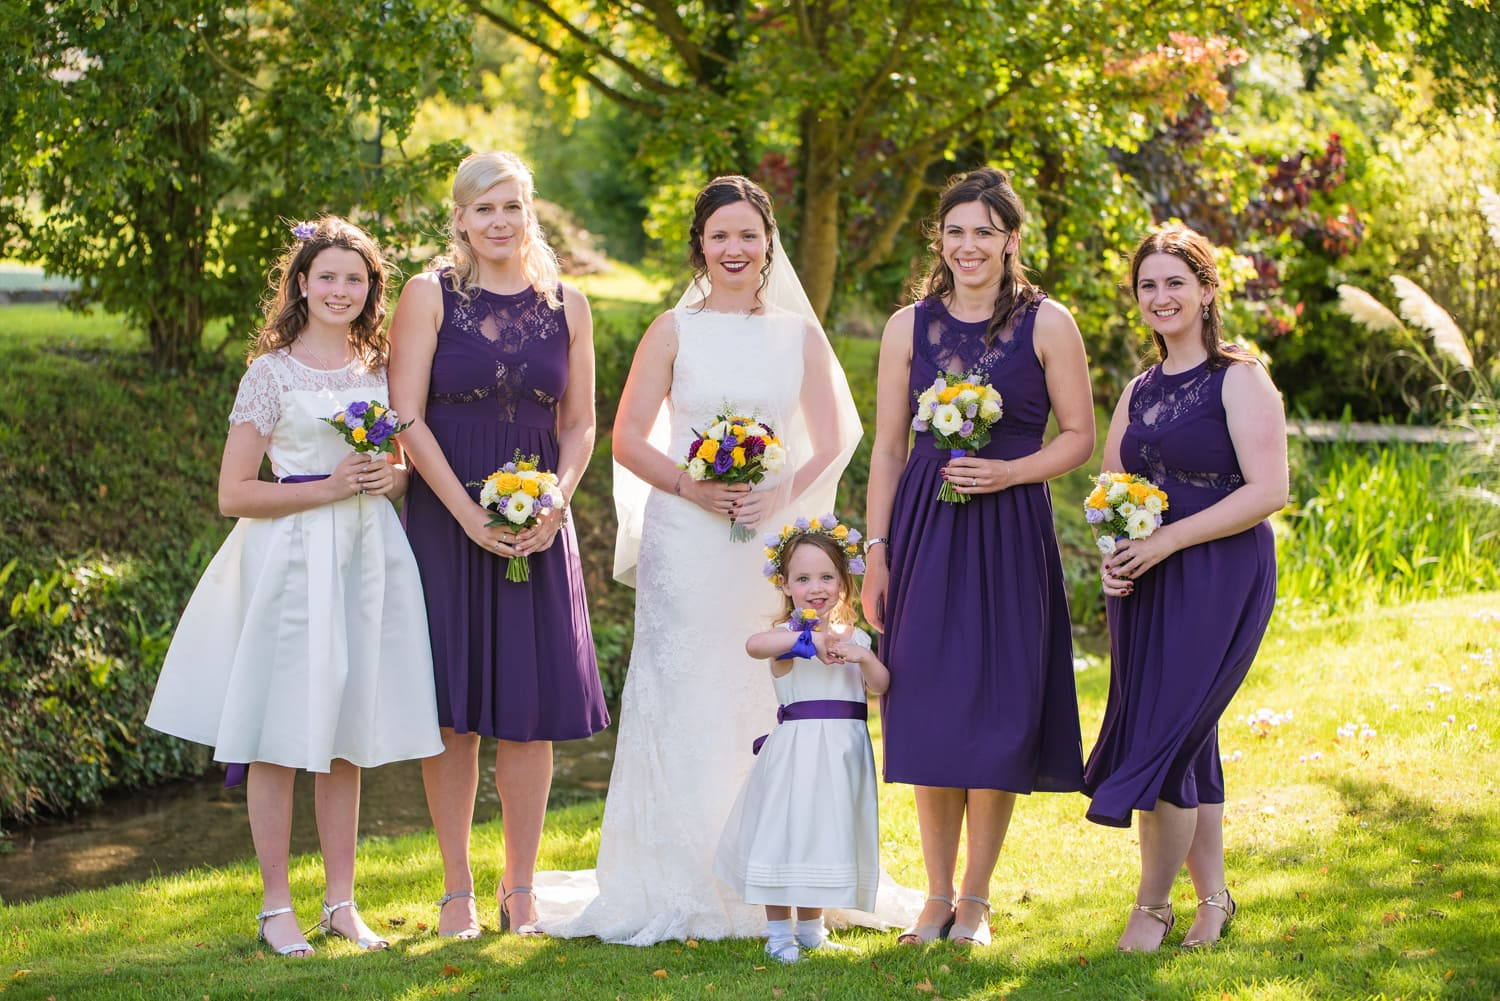 028-bride-and-bridesmaids-portrait.jpg